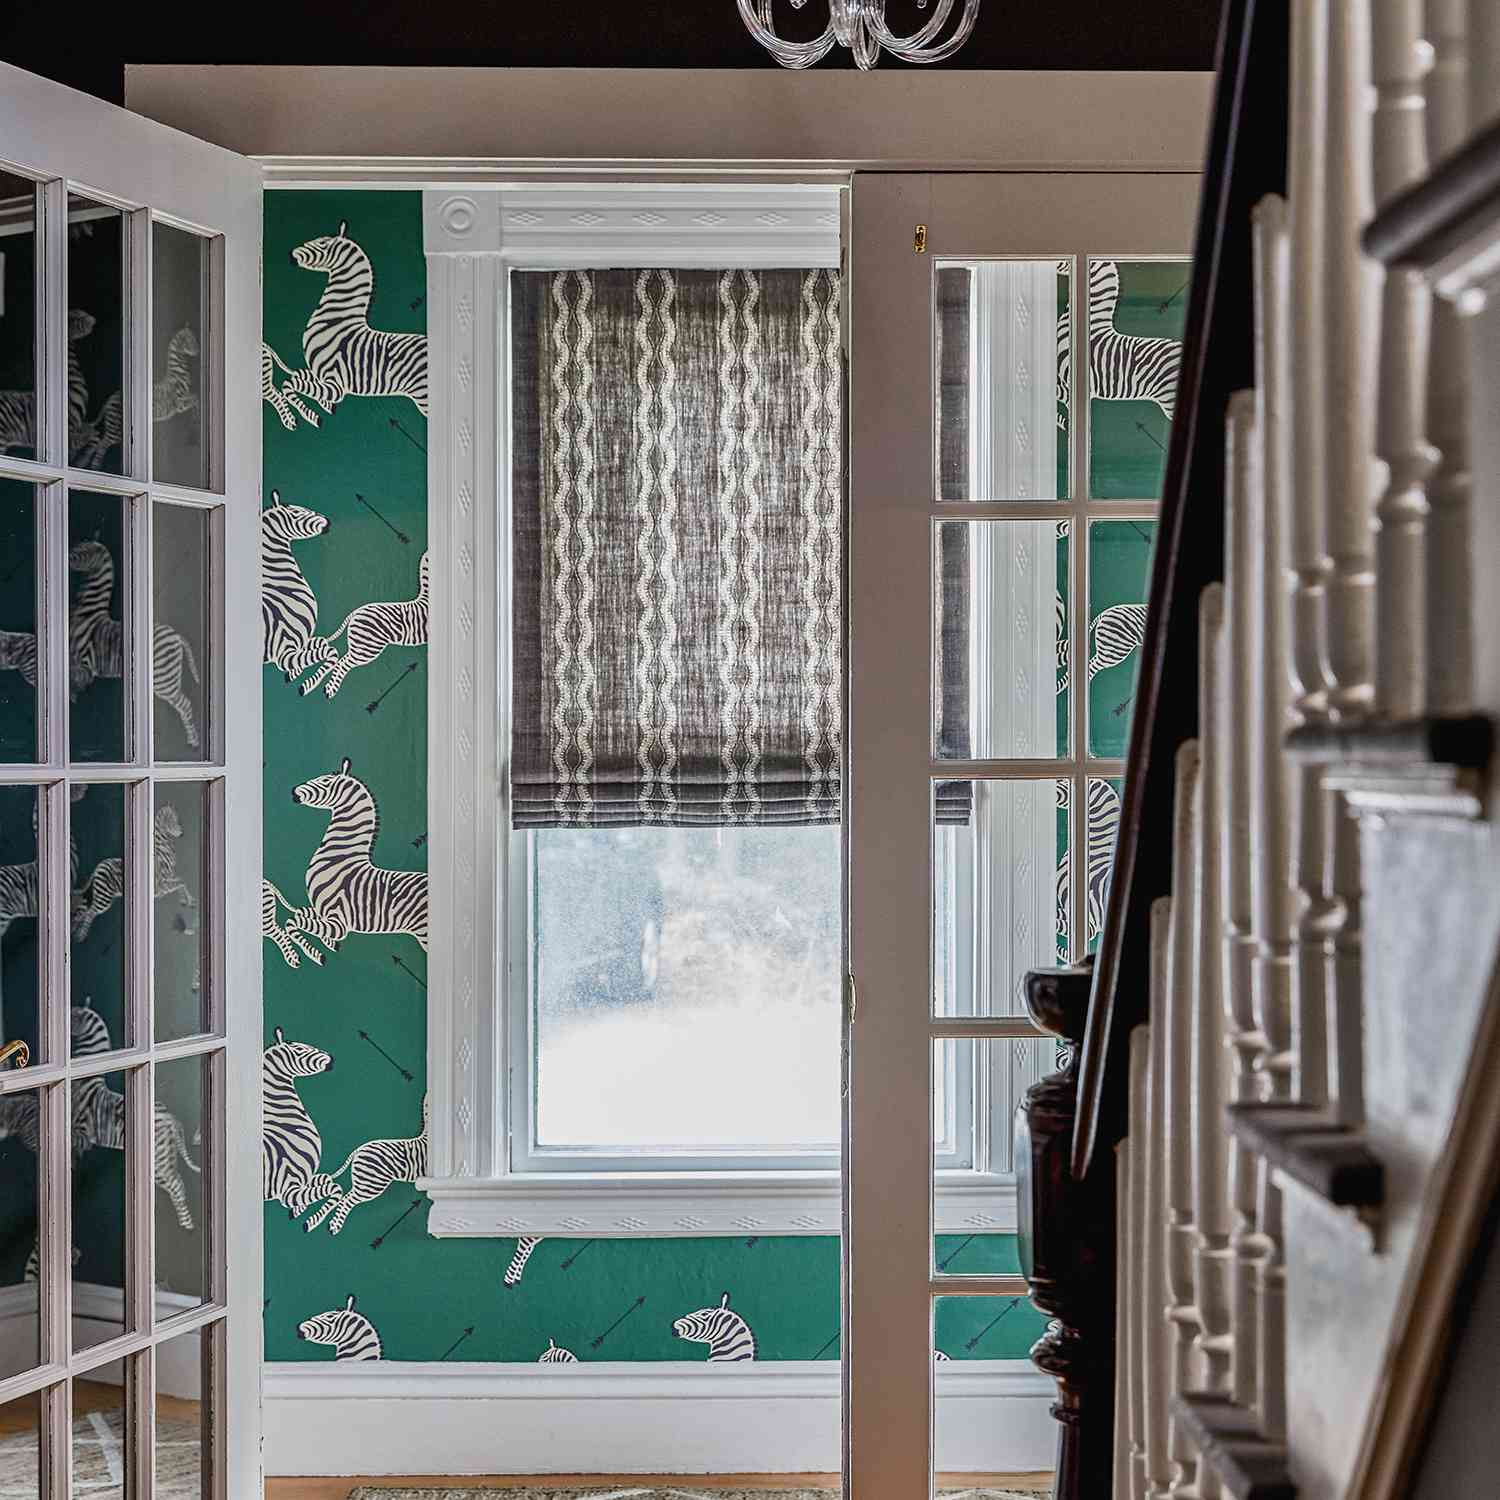 A hallway lined with green zebra print wallpaper